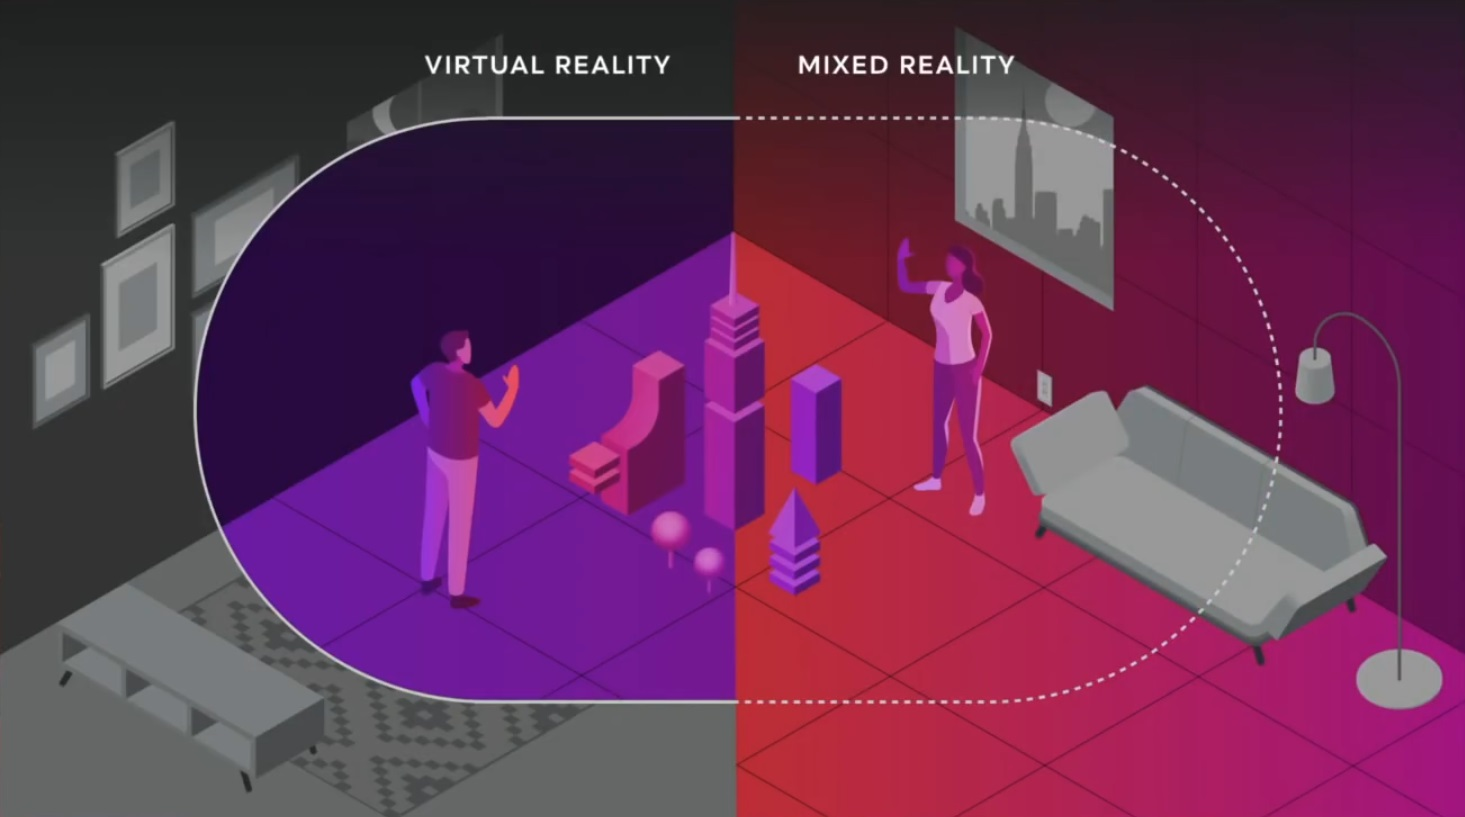 Oculus Mixed Reality